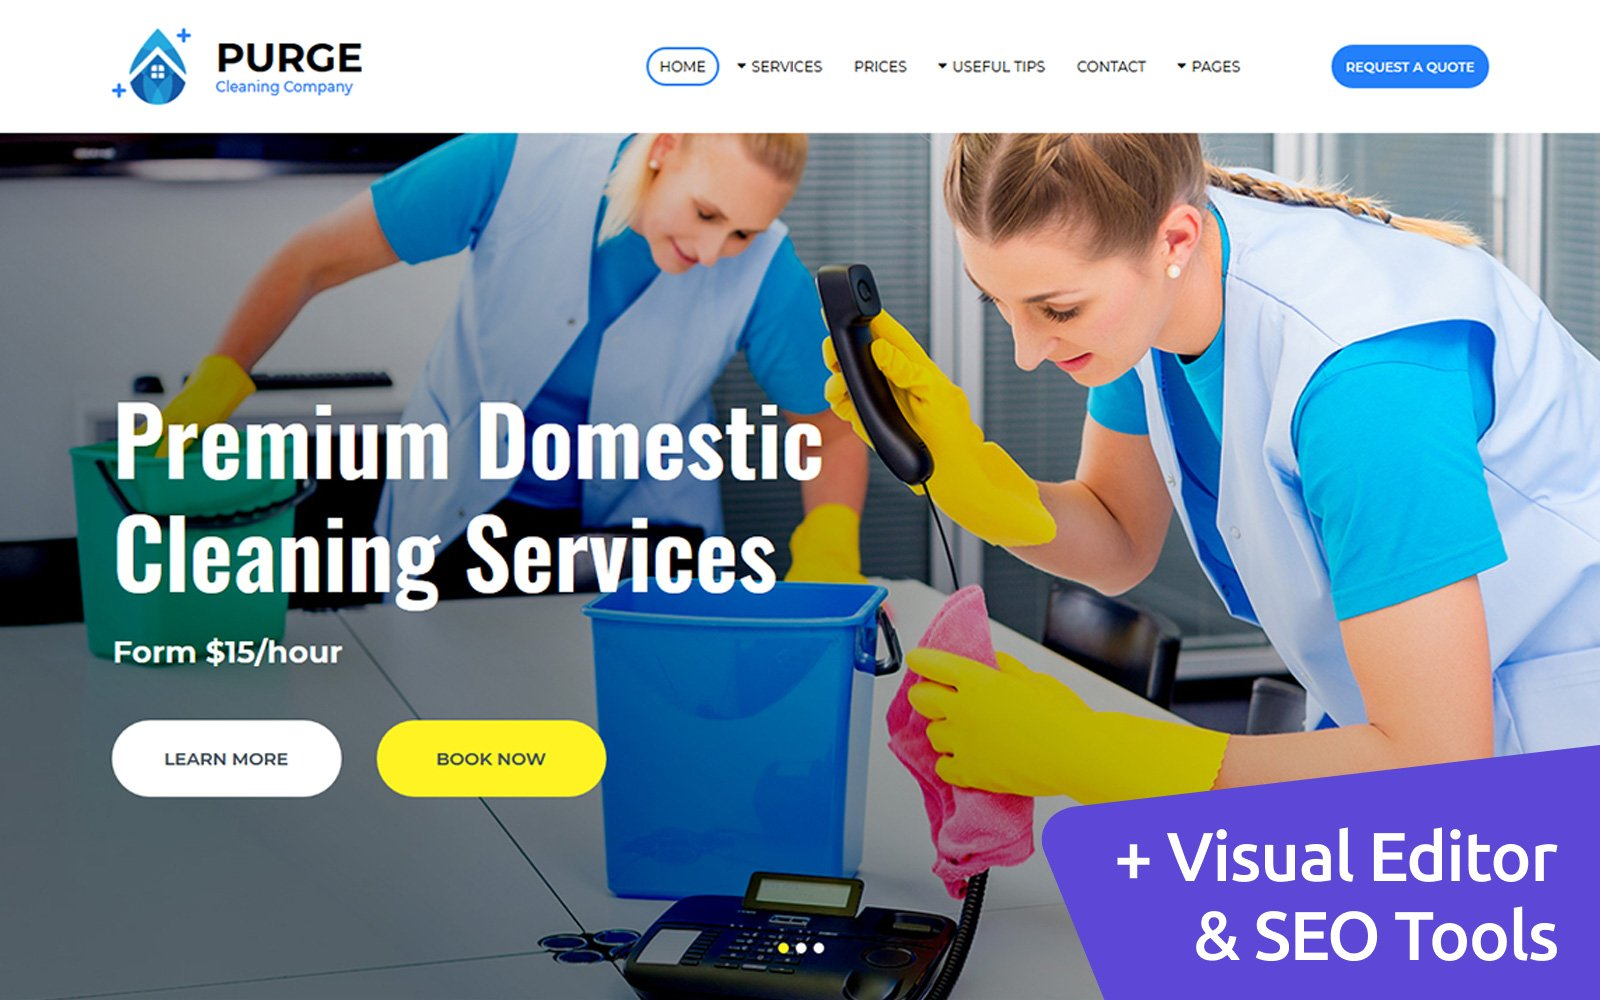 Purge - Cleaning Company №86631